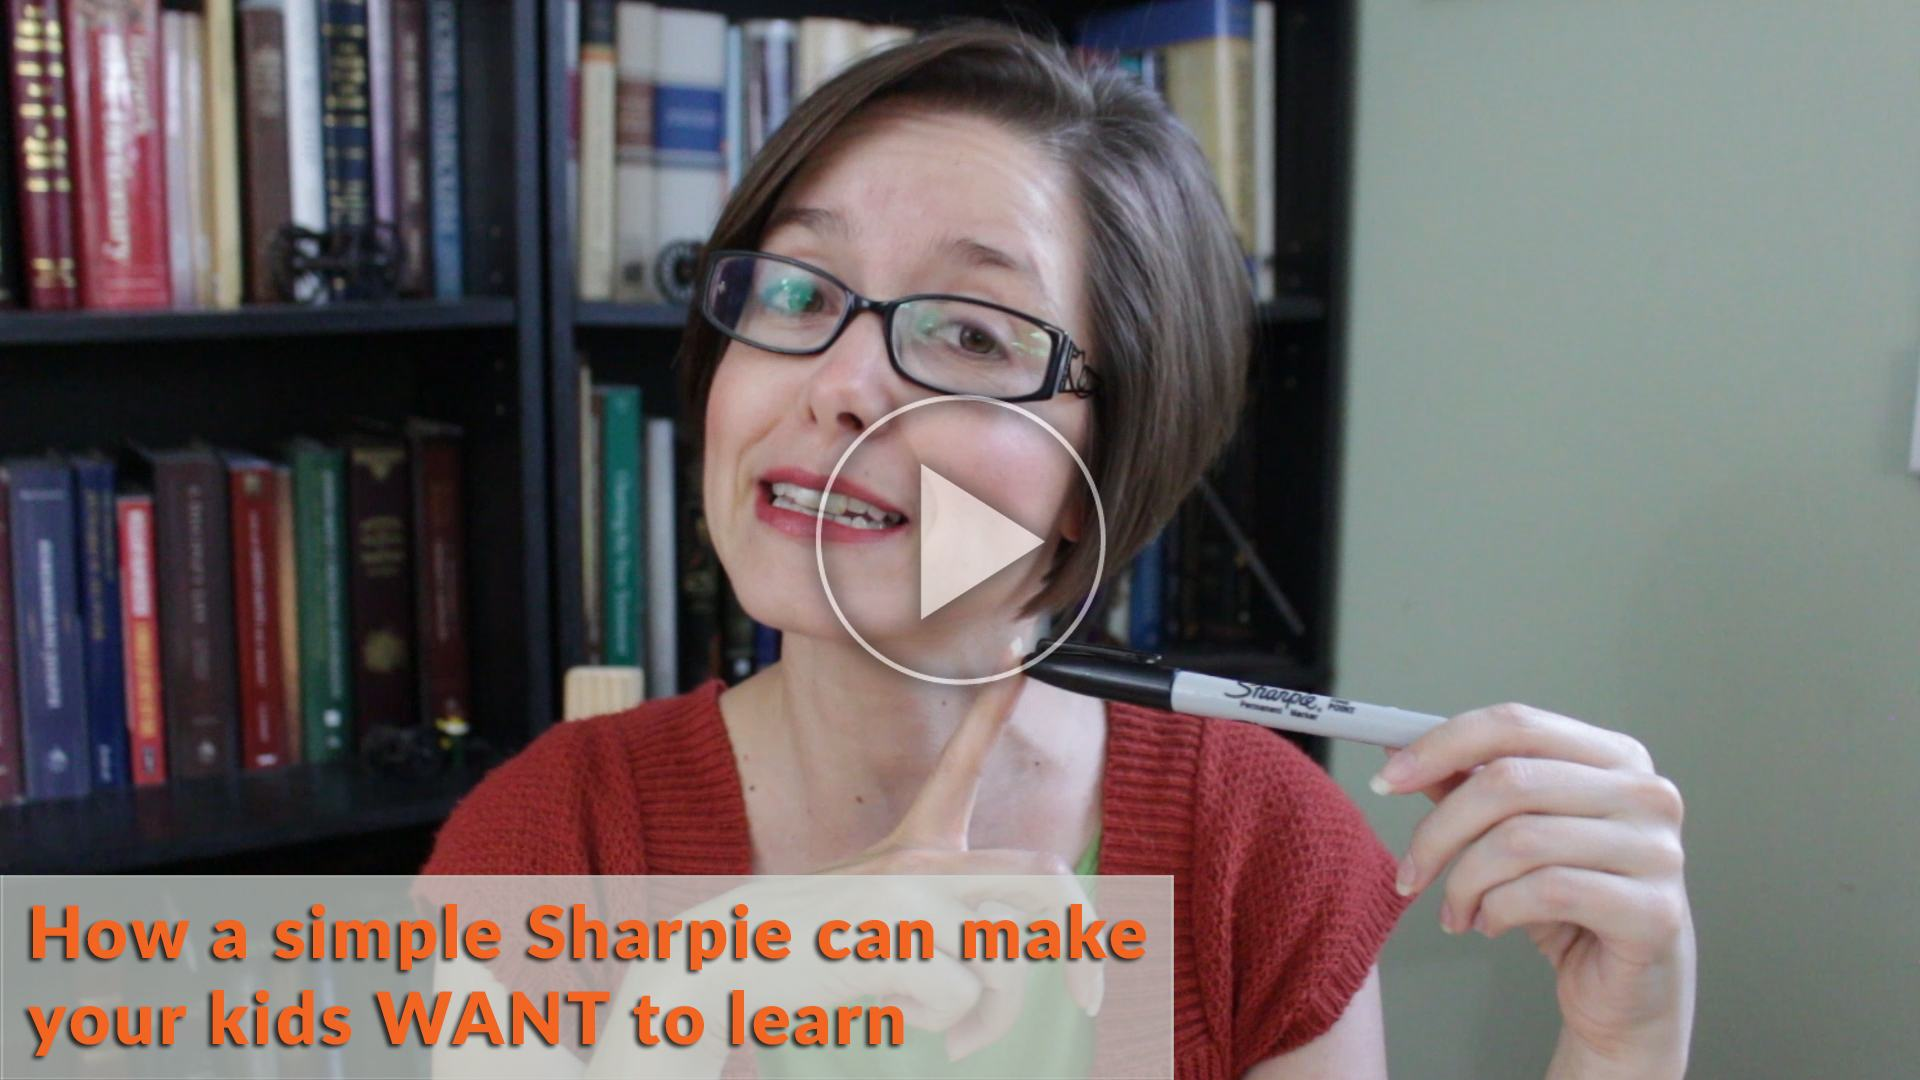 Use Sharpie Whiteboard Homeschool Hack